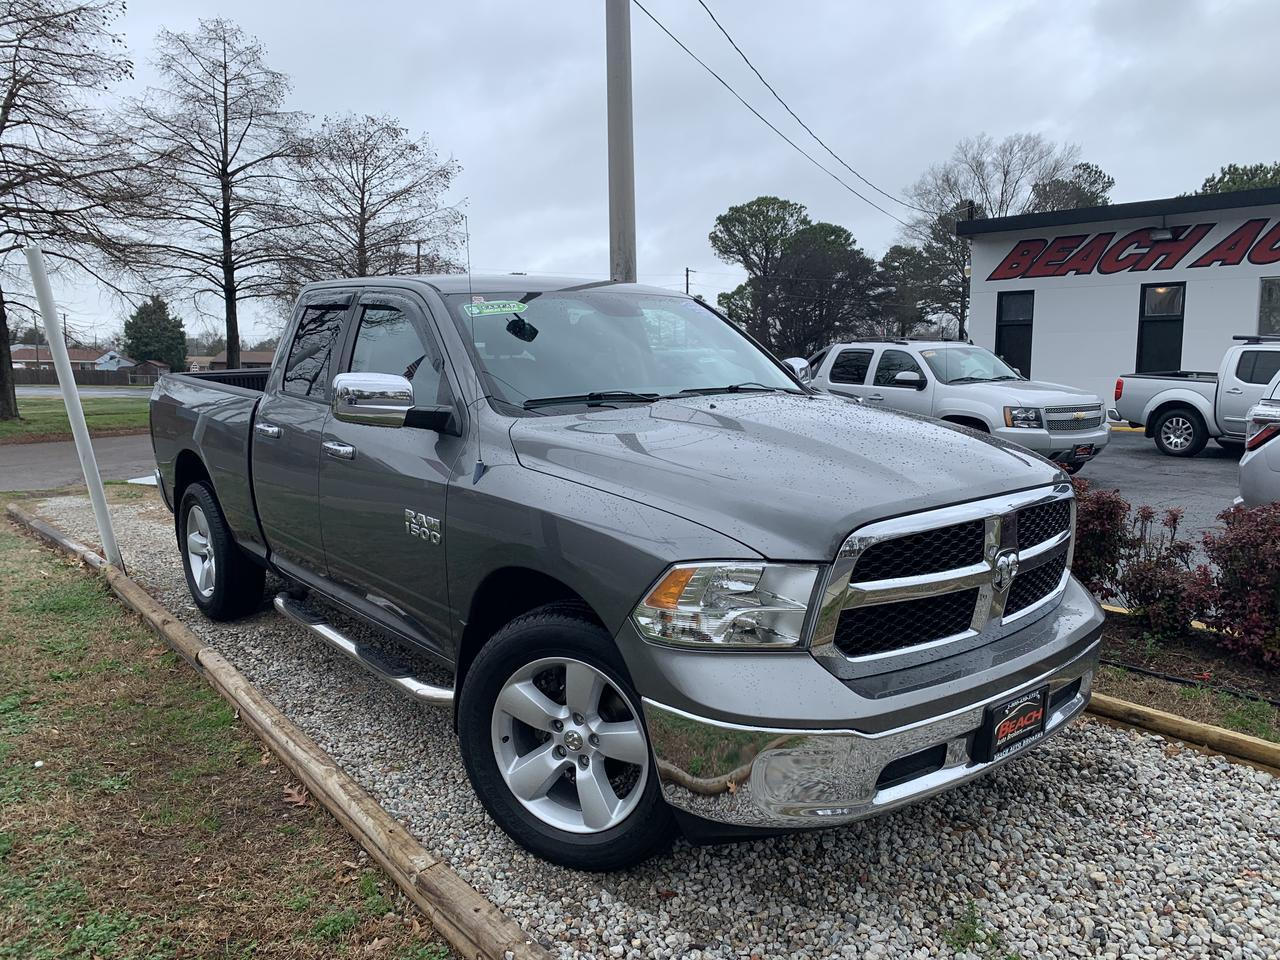 2013 DODGE RAM 1500 SLT QUAD CAB 4X4, WARRANTY, AUX PORT, CRUISE CONTROL, USB PORT, CLEAN CARFAX! Norfolk VA